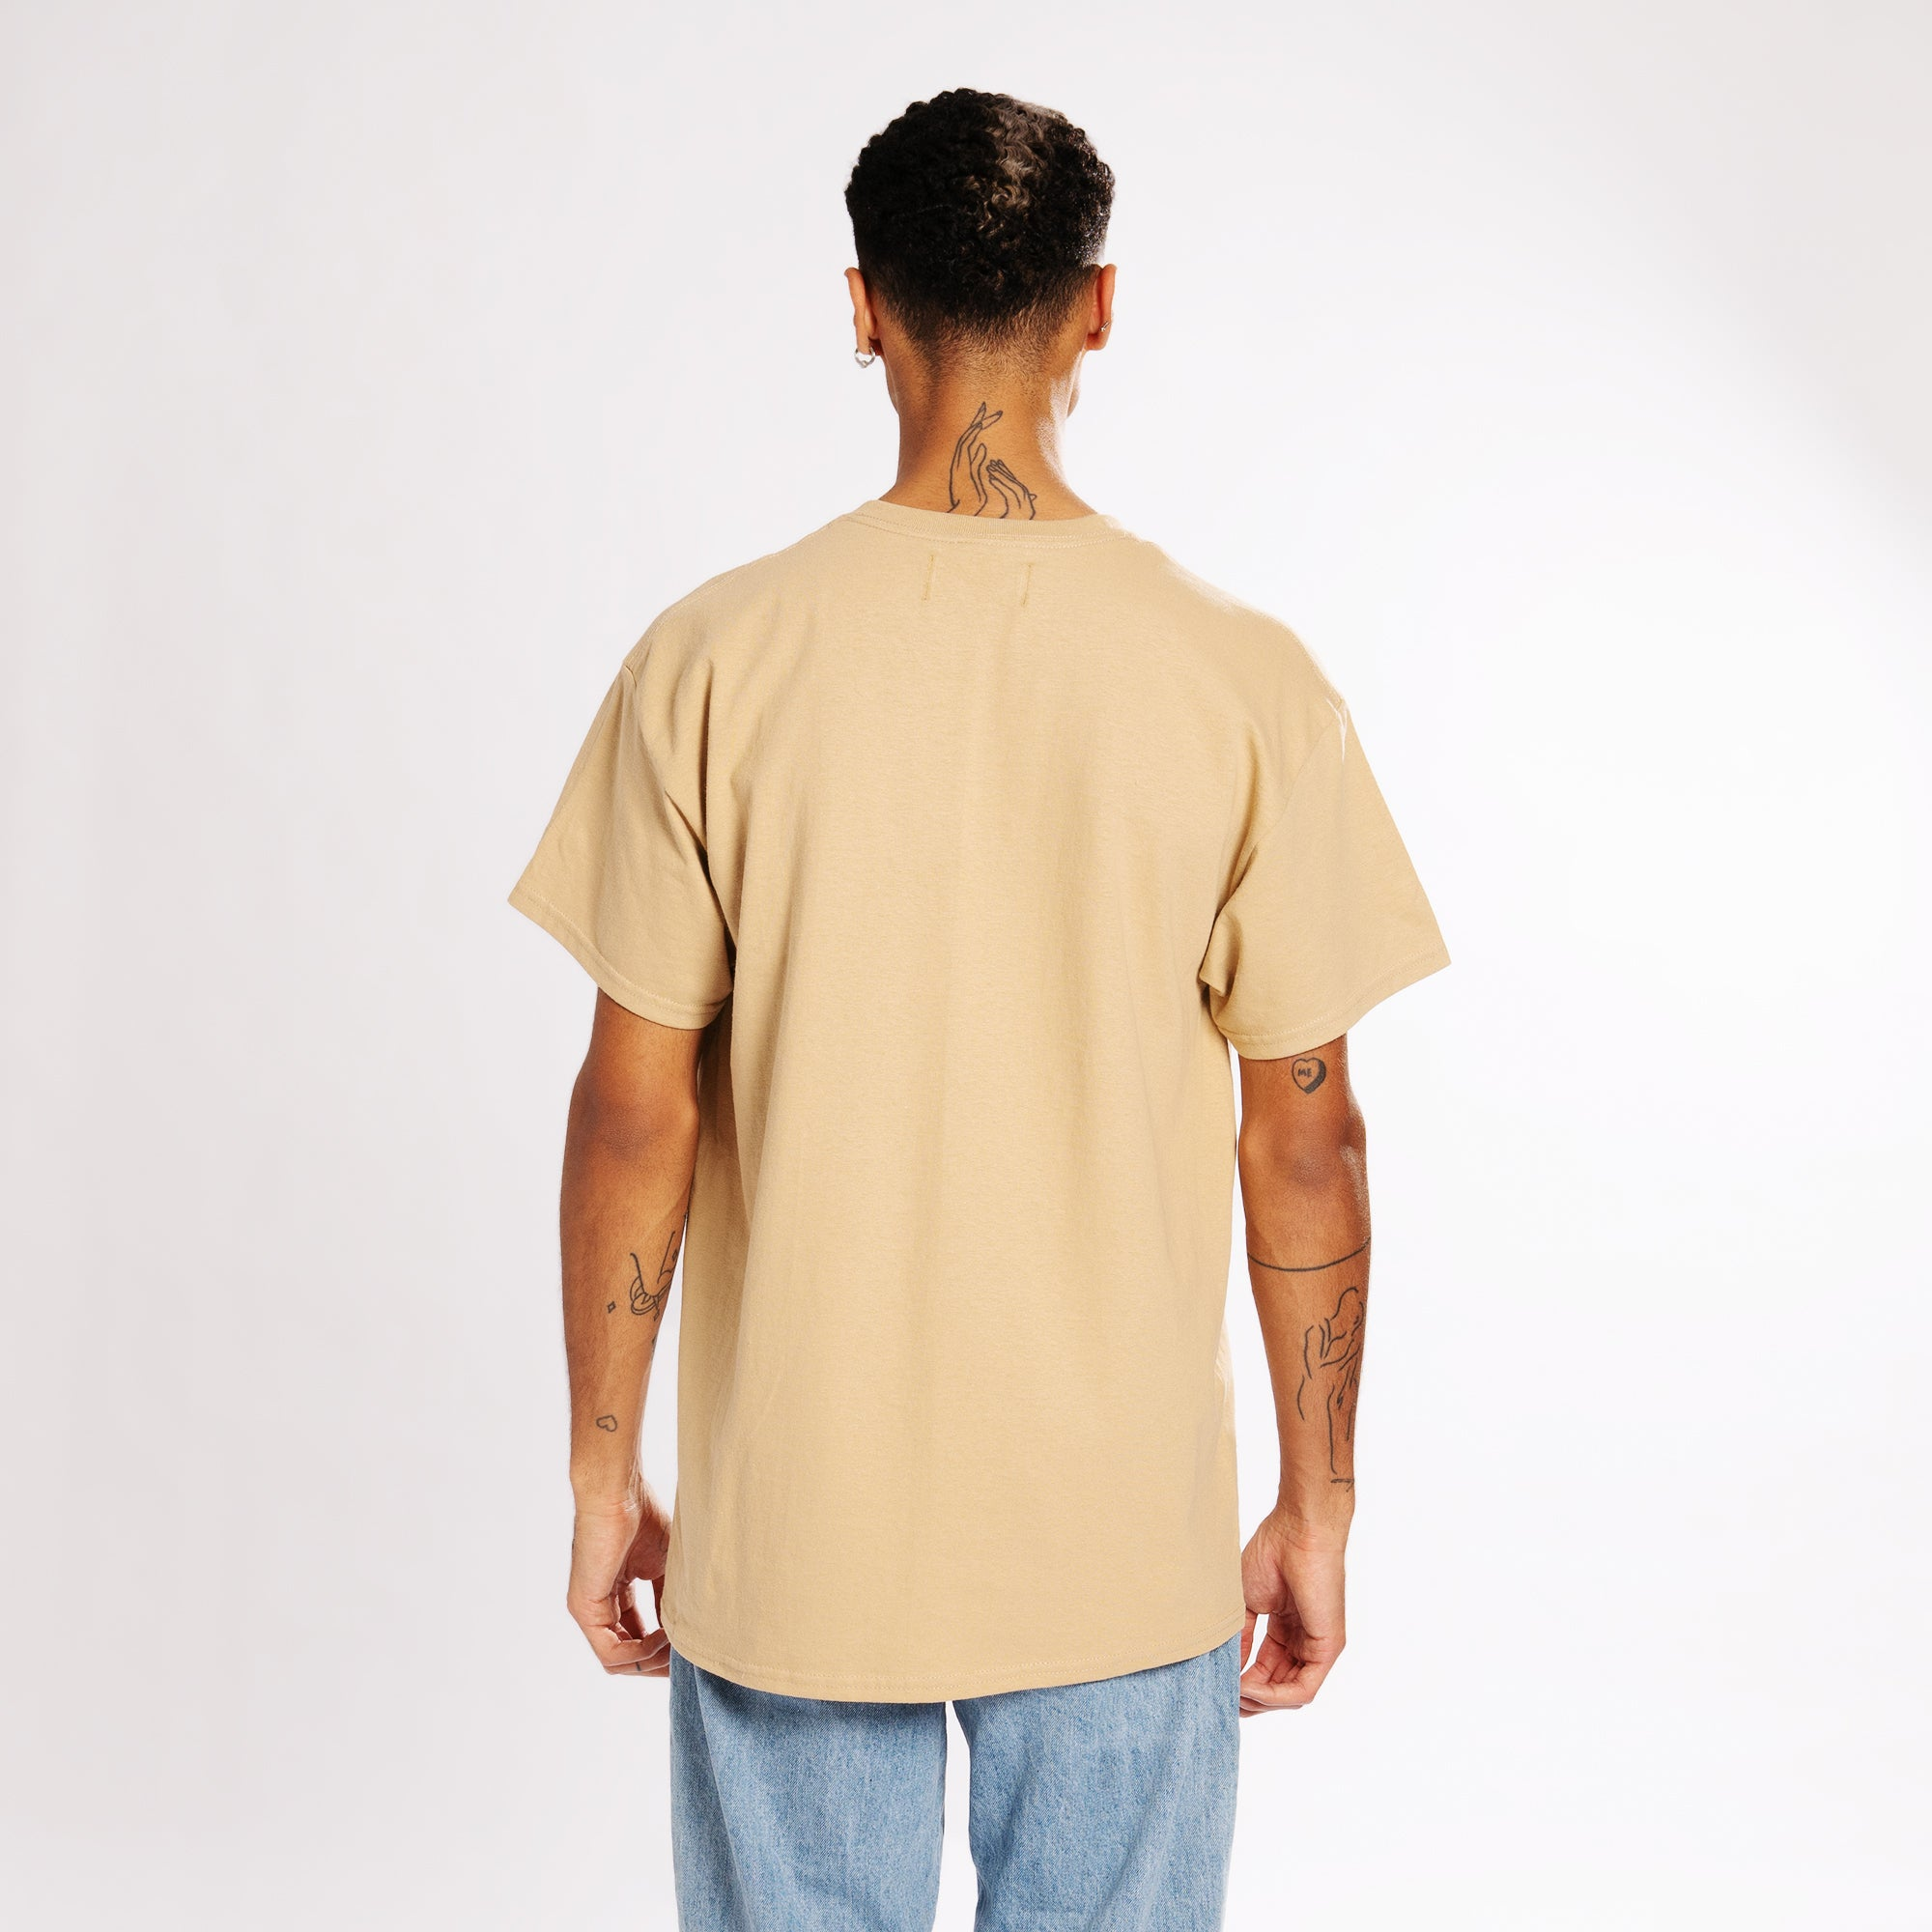 REFLECTION LOGO T-SHIRT - CAMEL